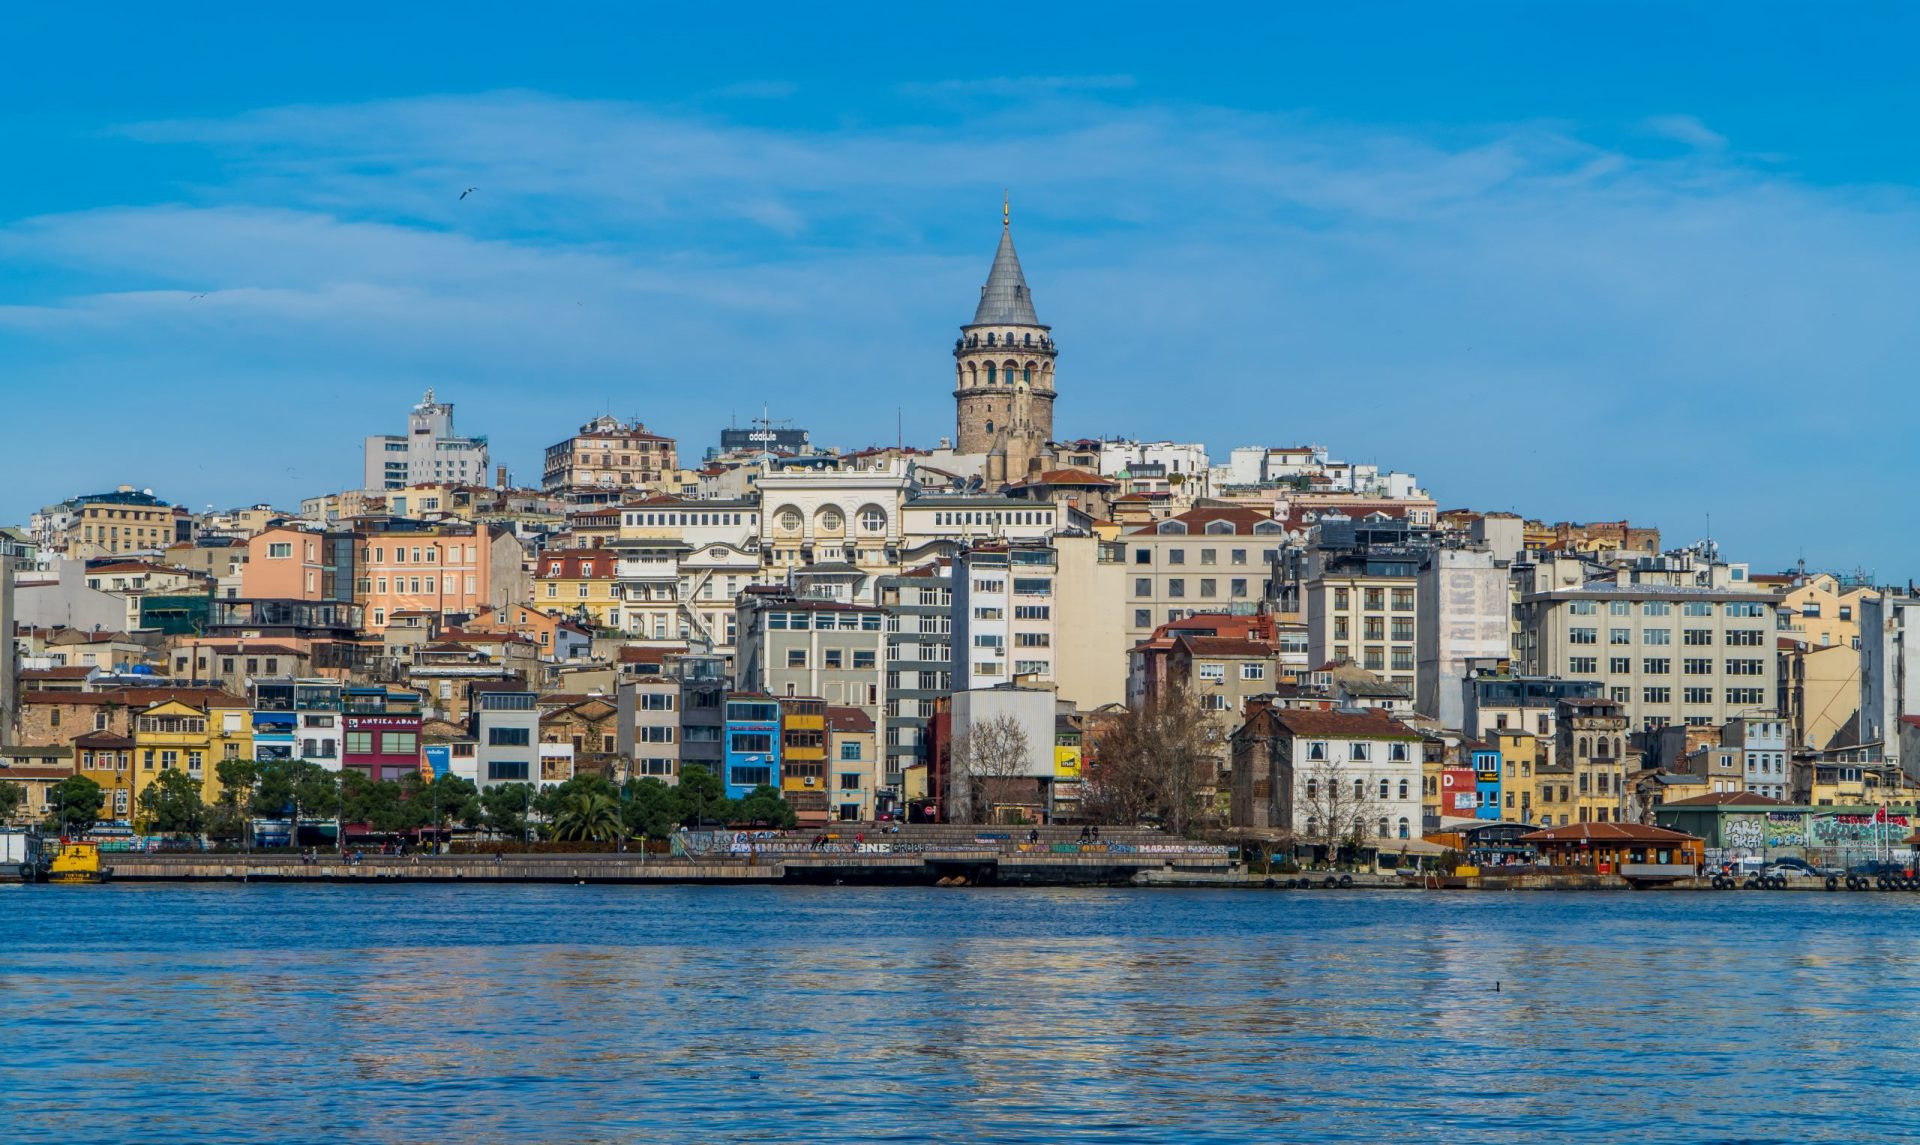 Digital Nomad Istanbul guide - the area of Galata and the Golden Horn river with Galata Tower